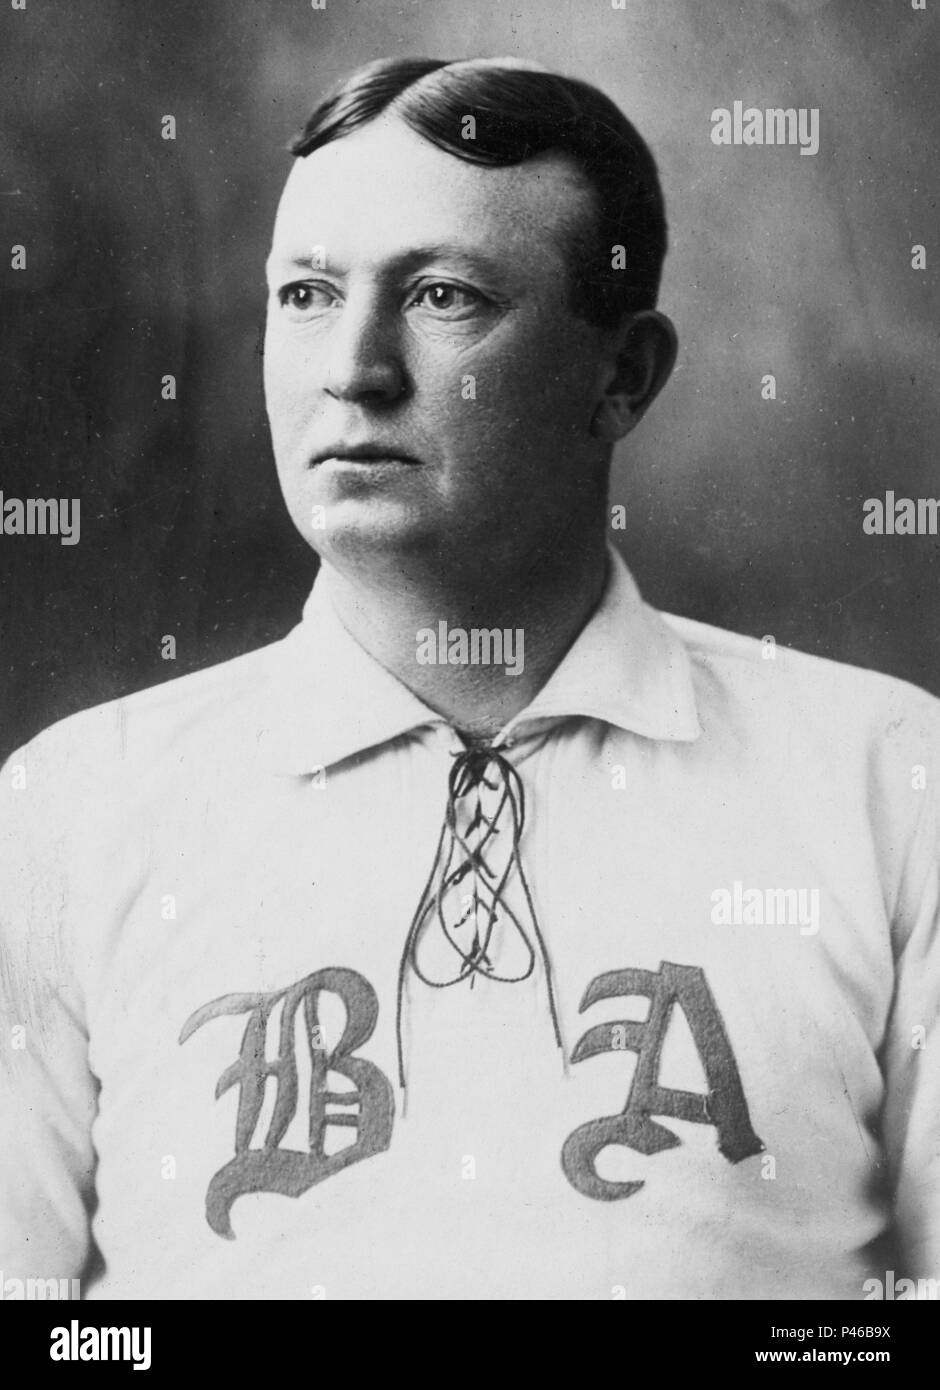 "Denton True Young ""CY"" (1867 - 1955) American Major League Baseball pitcher Imagen De Stock"